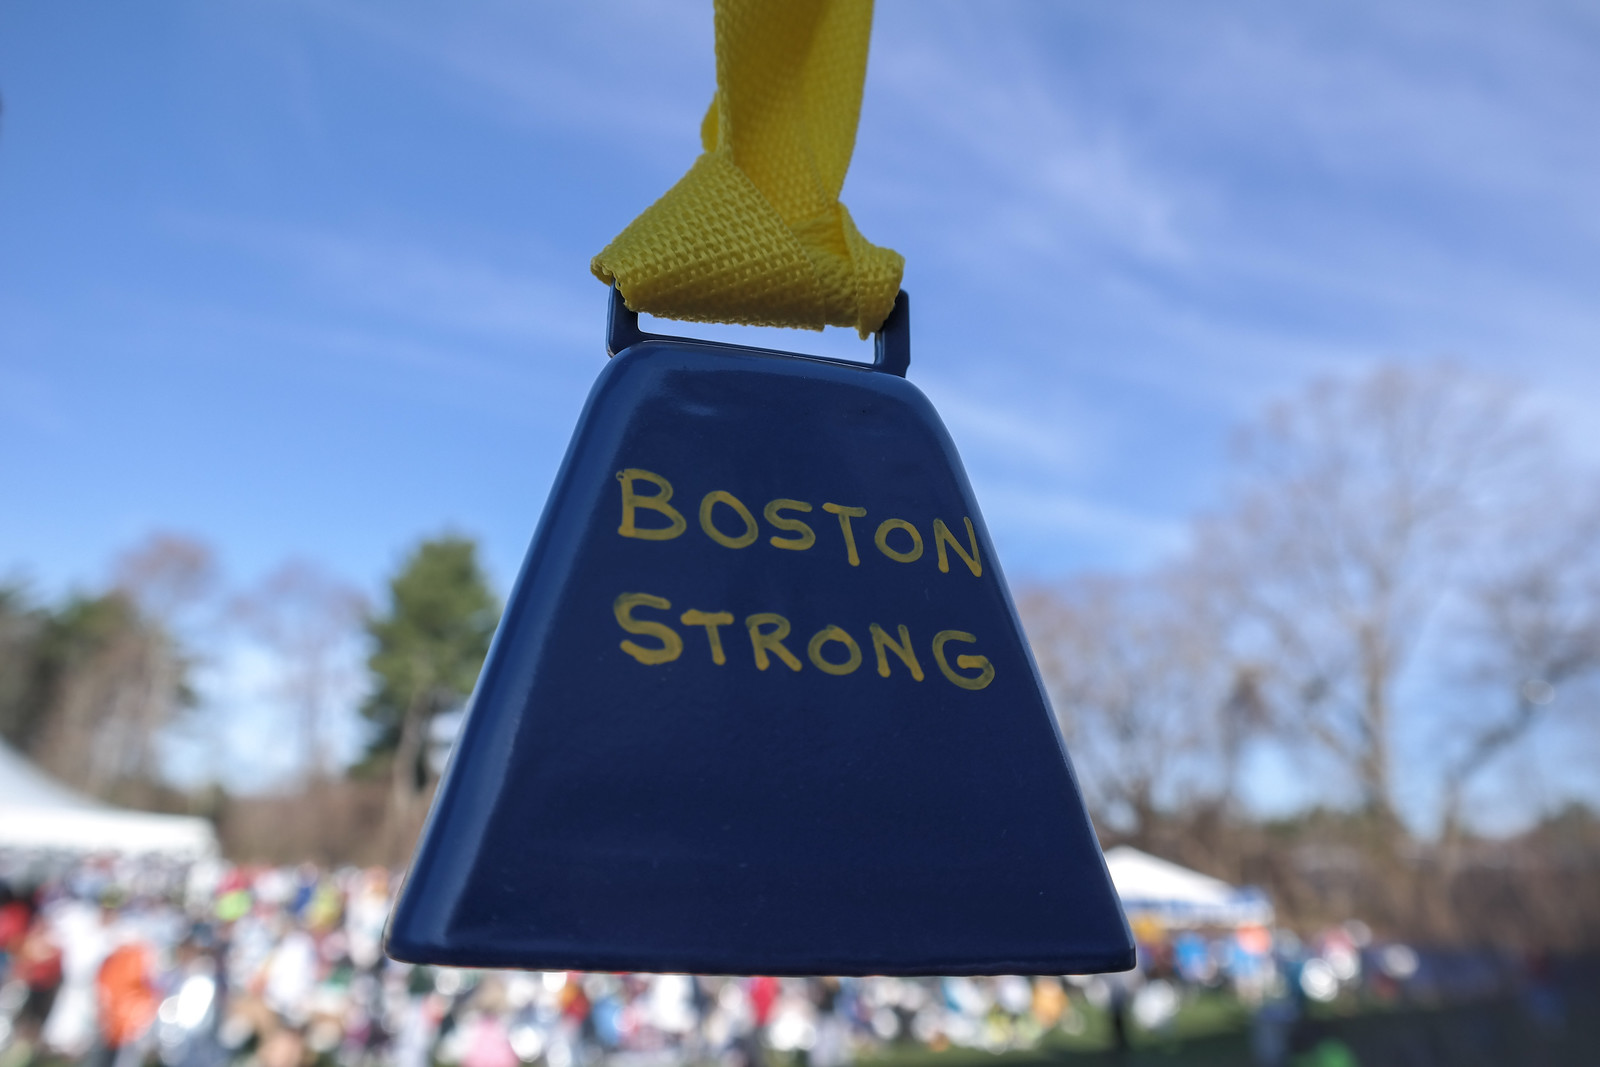 My New Boston Strong Cowbell